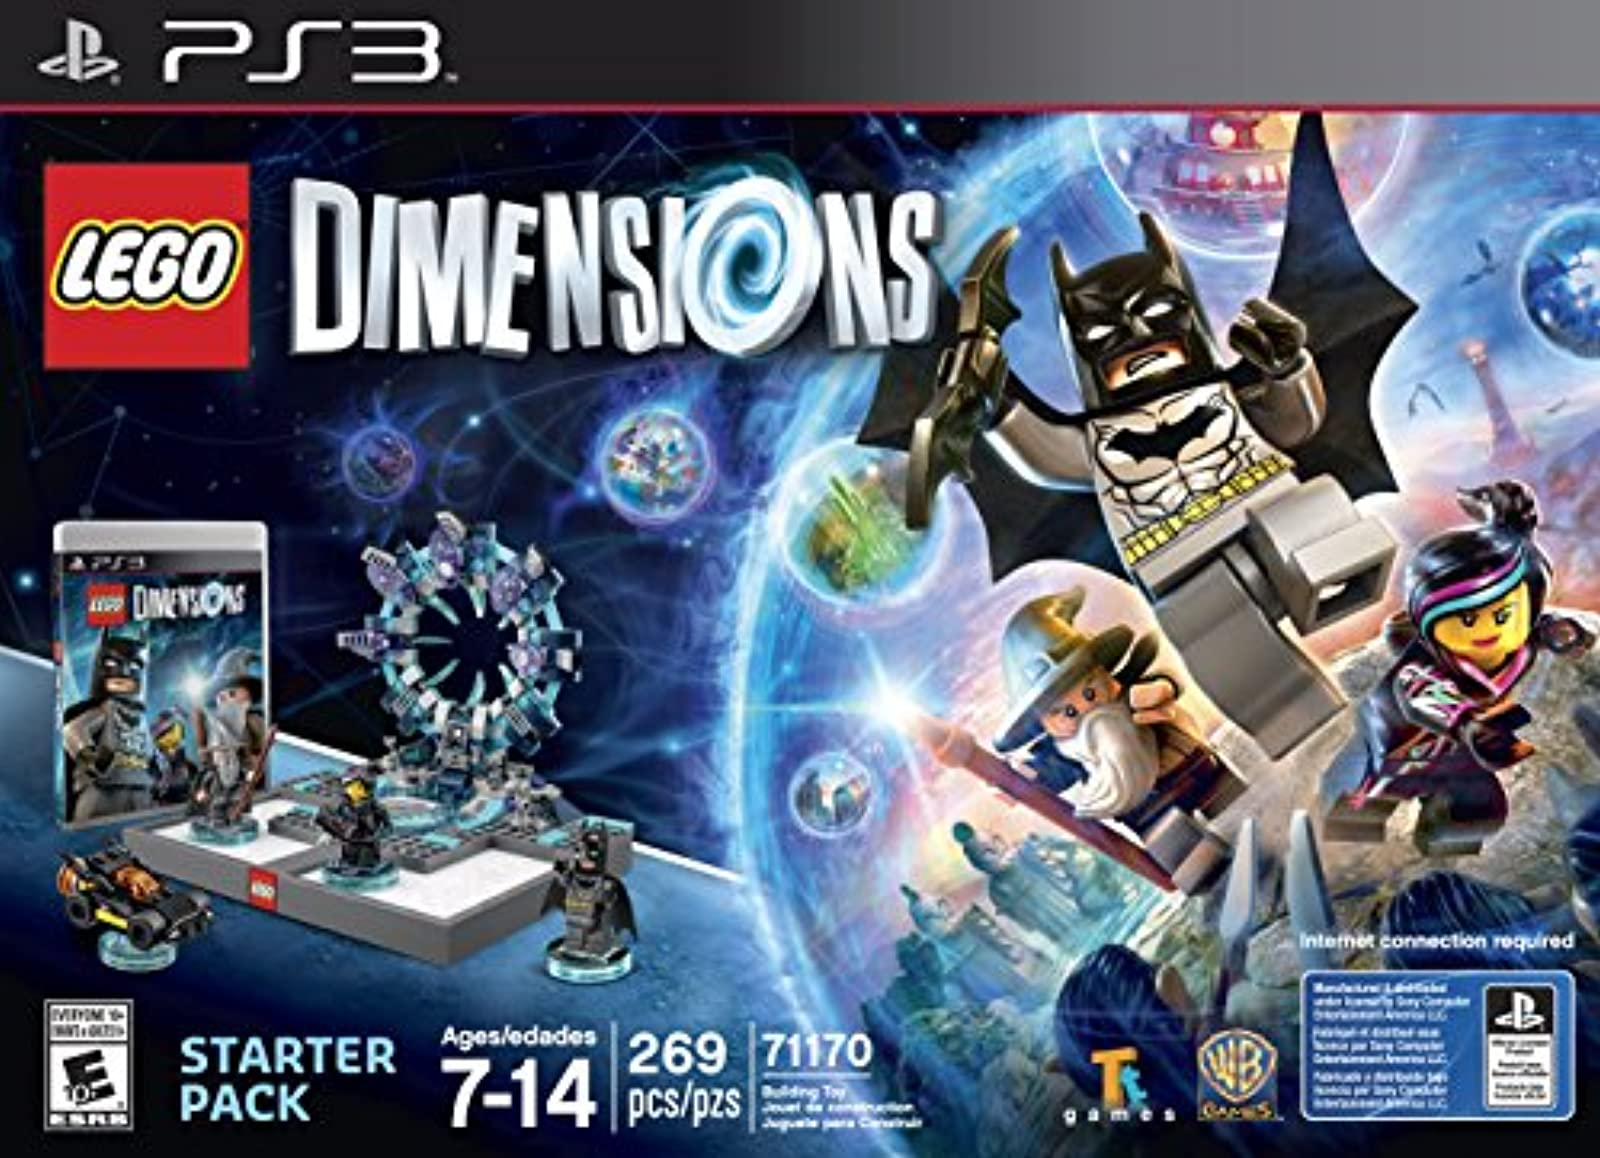 Lego Dimensions Starter Pack For PlayStation 3 PS3